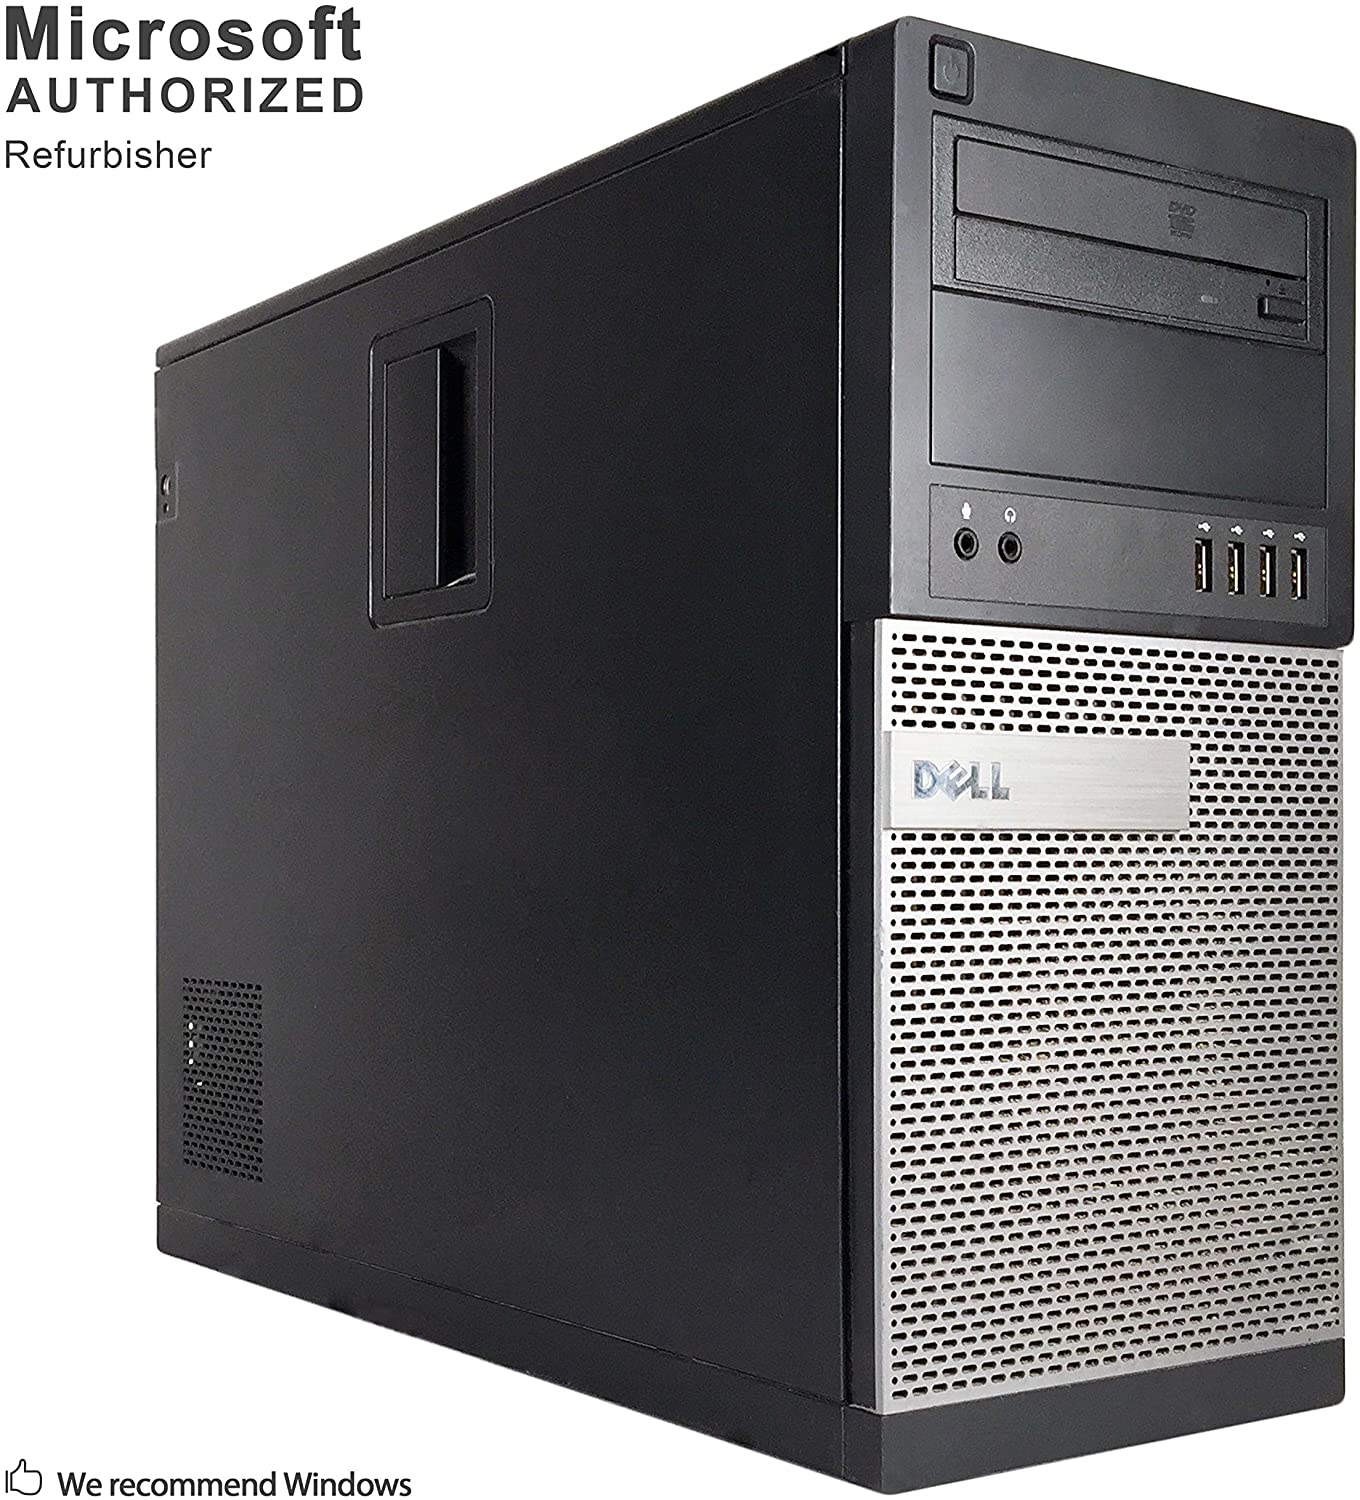 Dell Optiplex 990 Tower High Business Desktop Computer (Intel Quad-Core i5-2400 3.1GHz, 8GB DDR3 Memory, 2TB HDD, DVDRW, Windows 10 Professional) (Renewed)